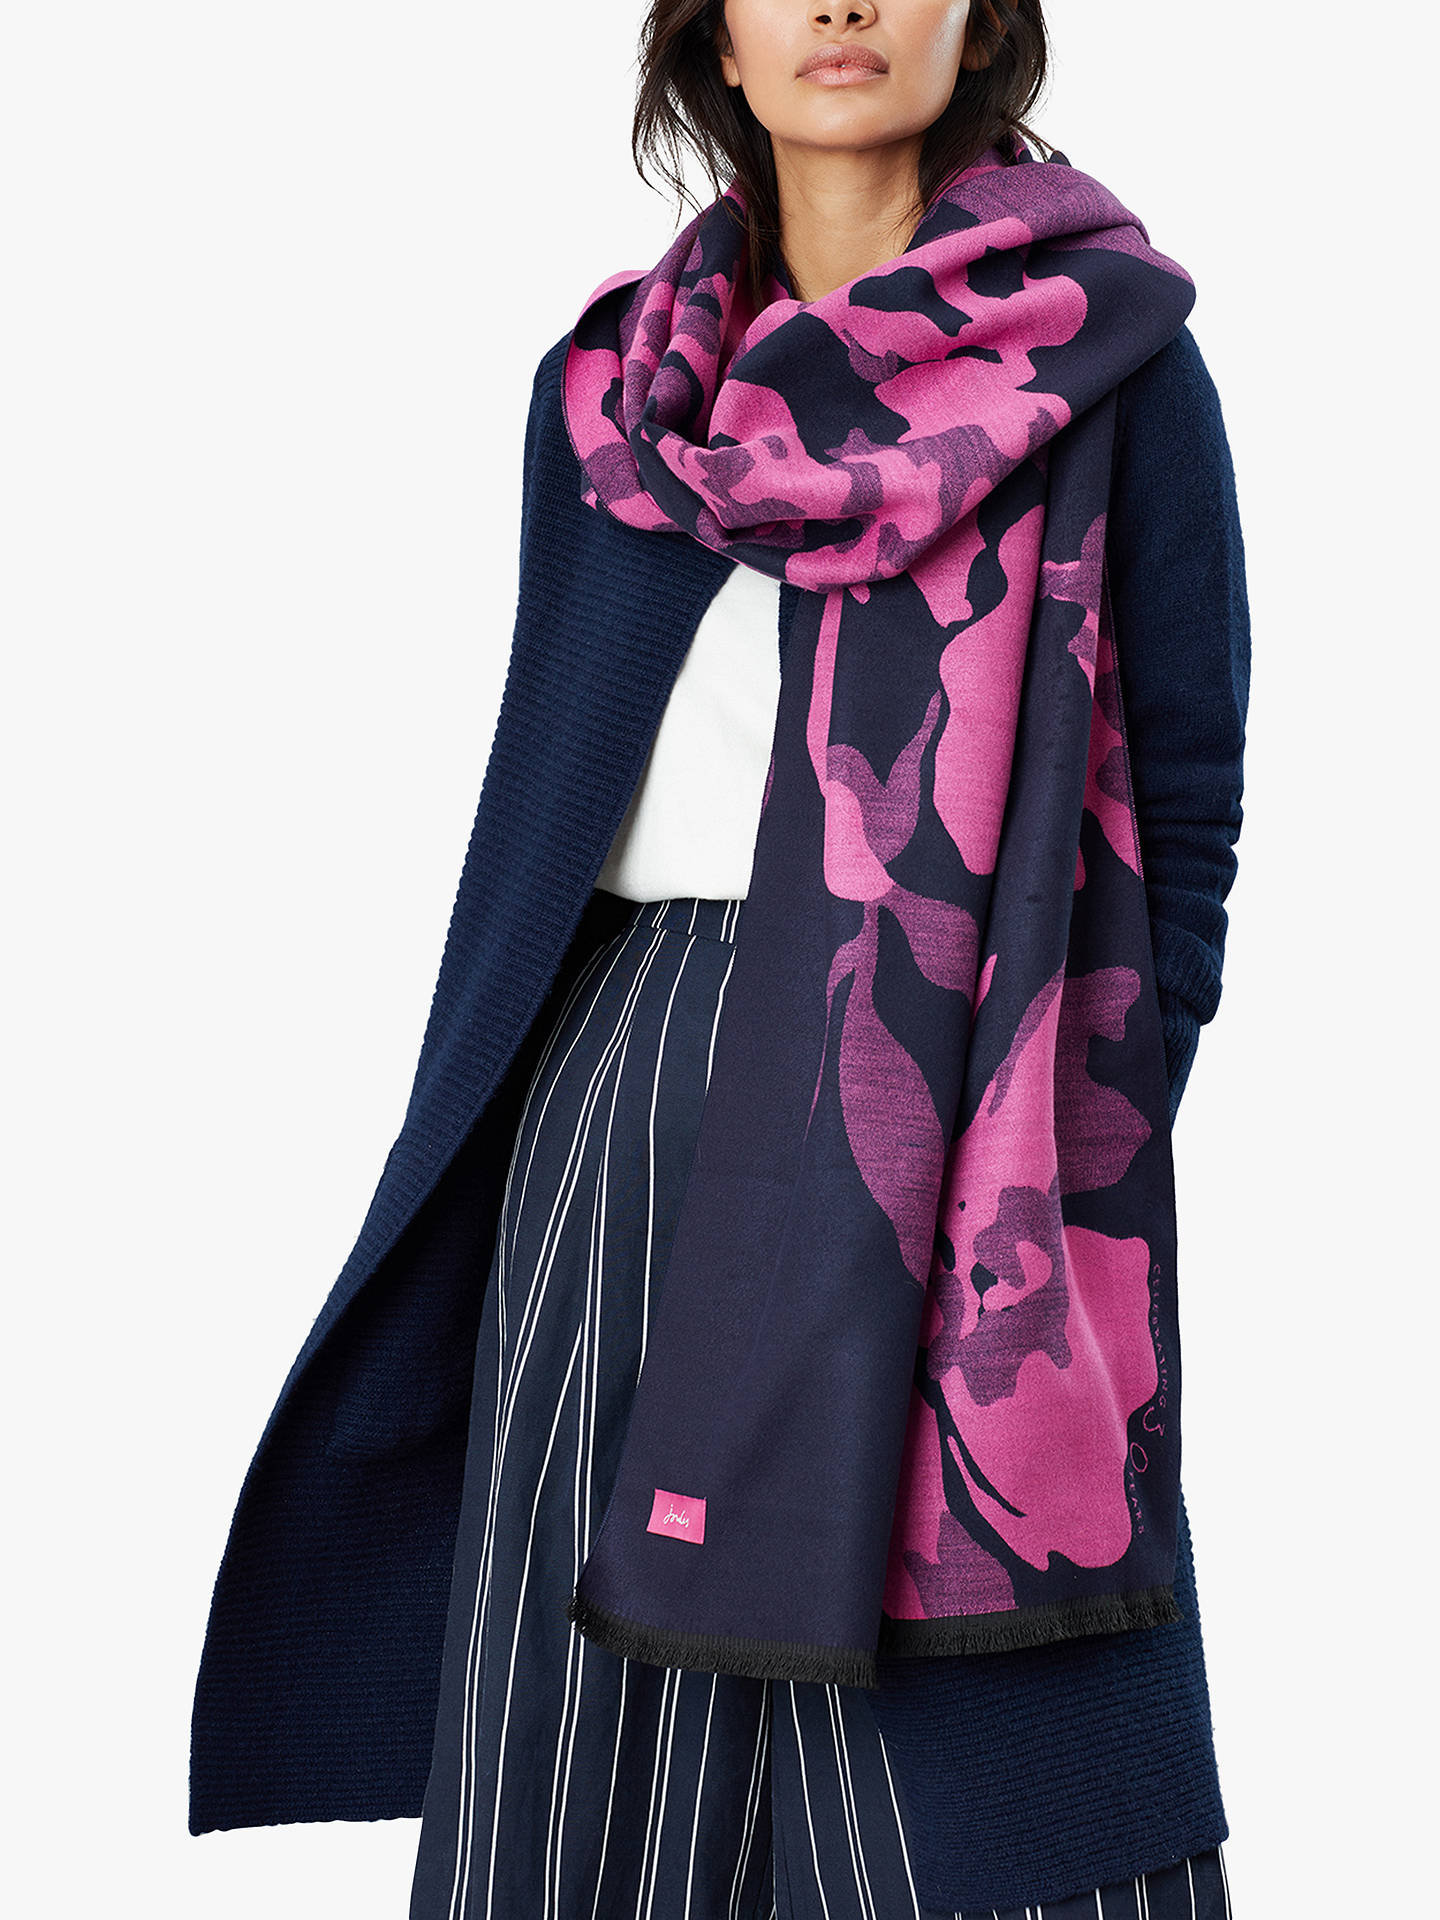 Buy Joules Jacqueline Cambridge Floral Scarf, Navy/Fuchsia Online at johnlewis.com